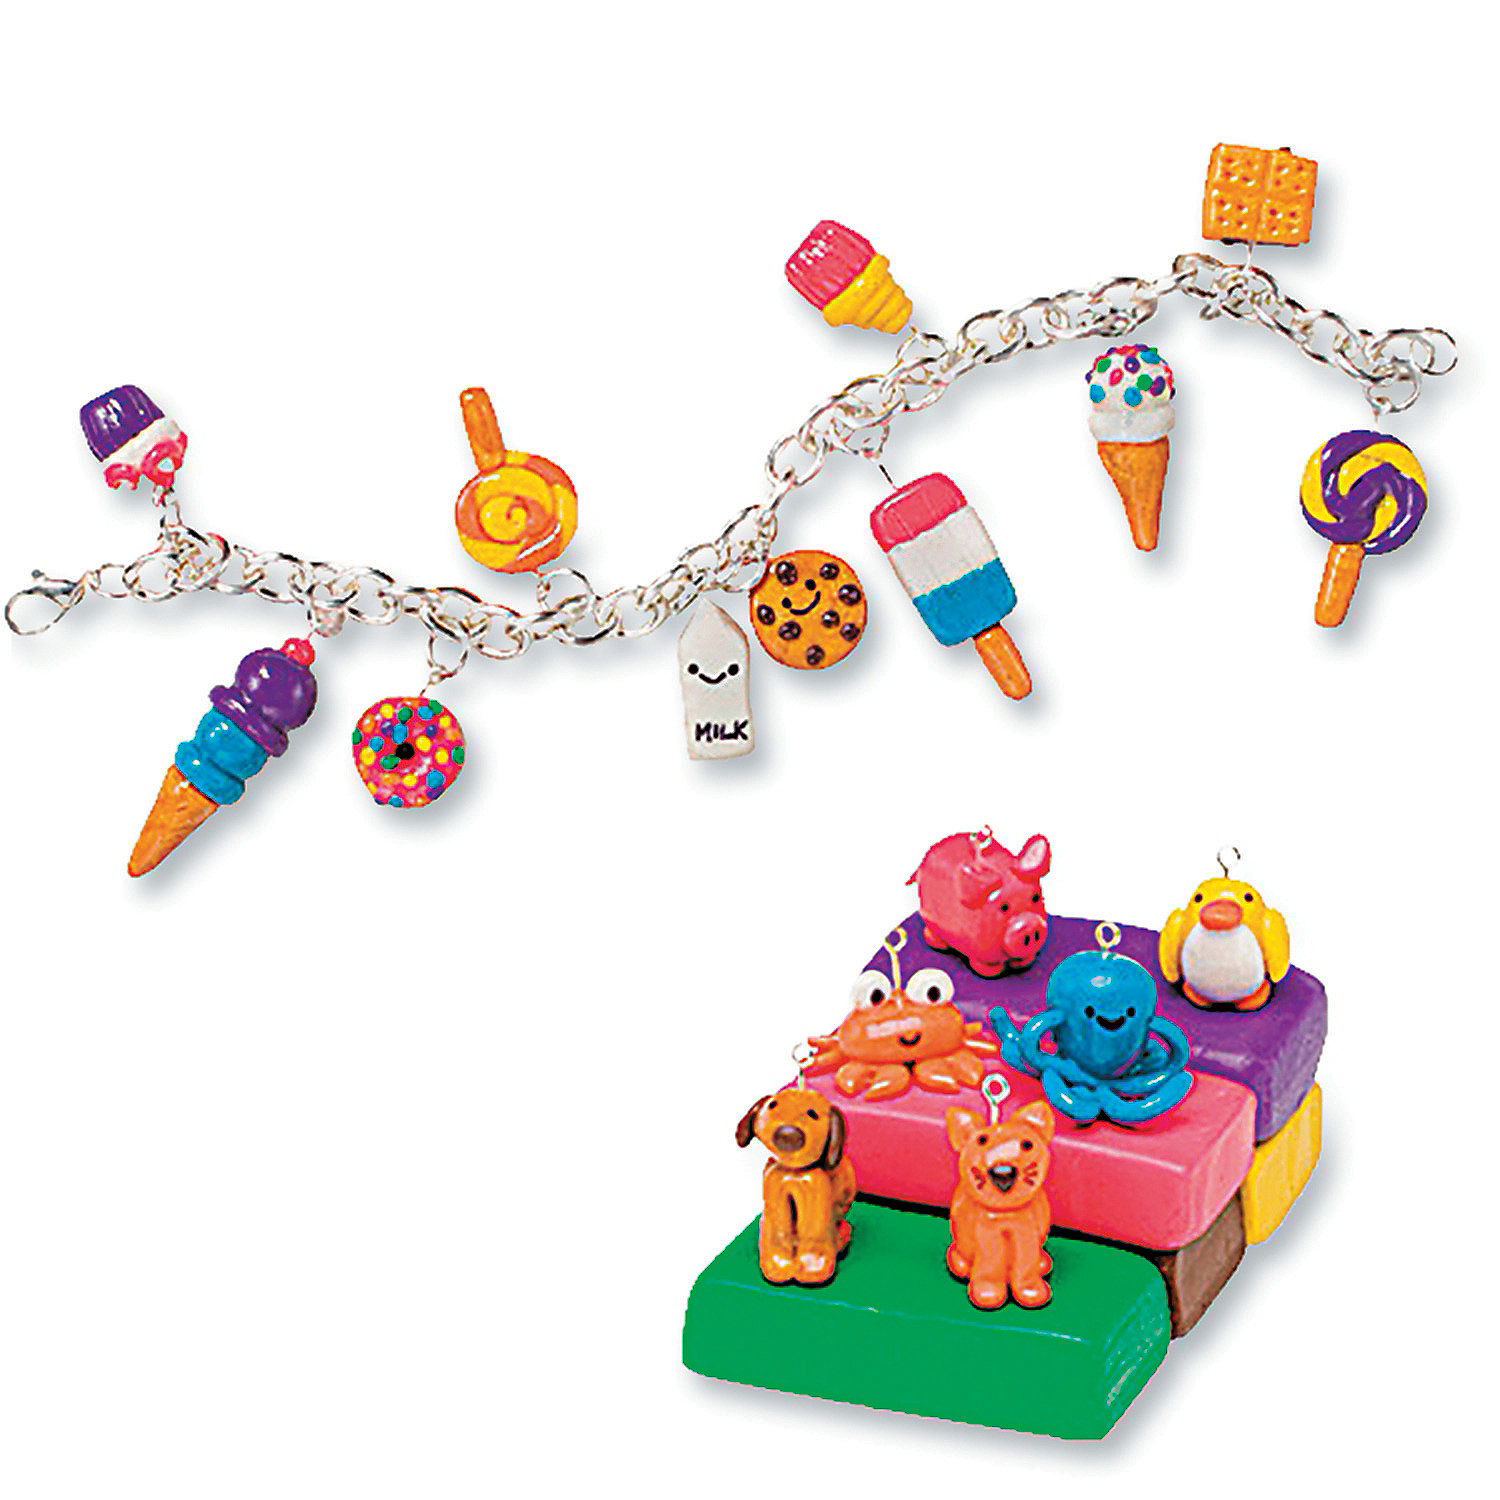 Make clay charms creative activities craft activities for Klutz make clay charms craft kit